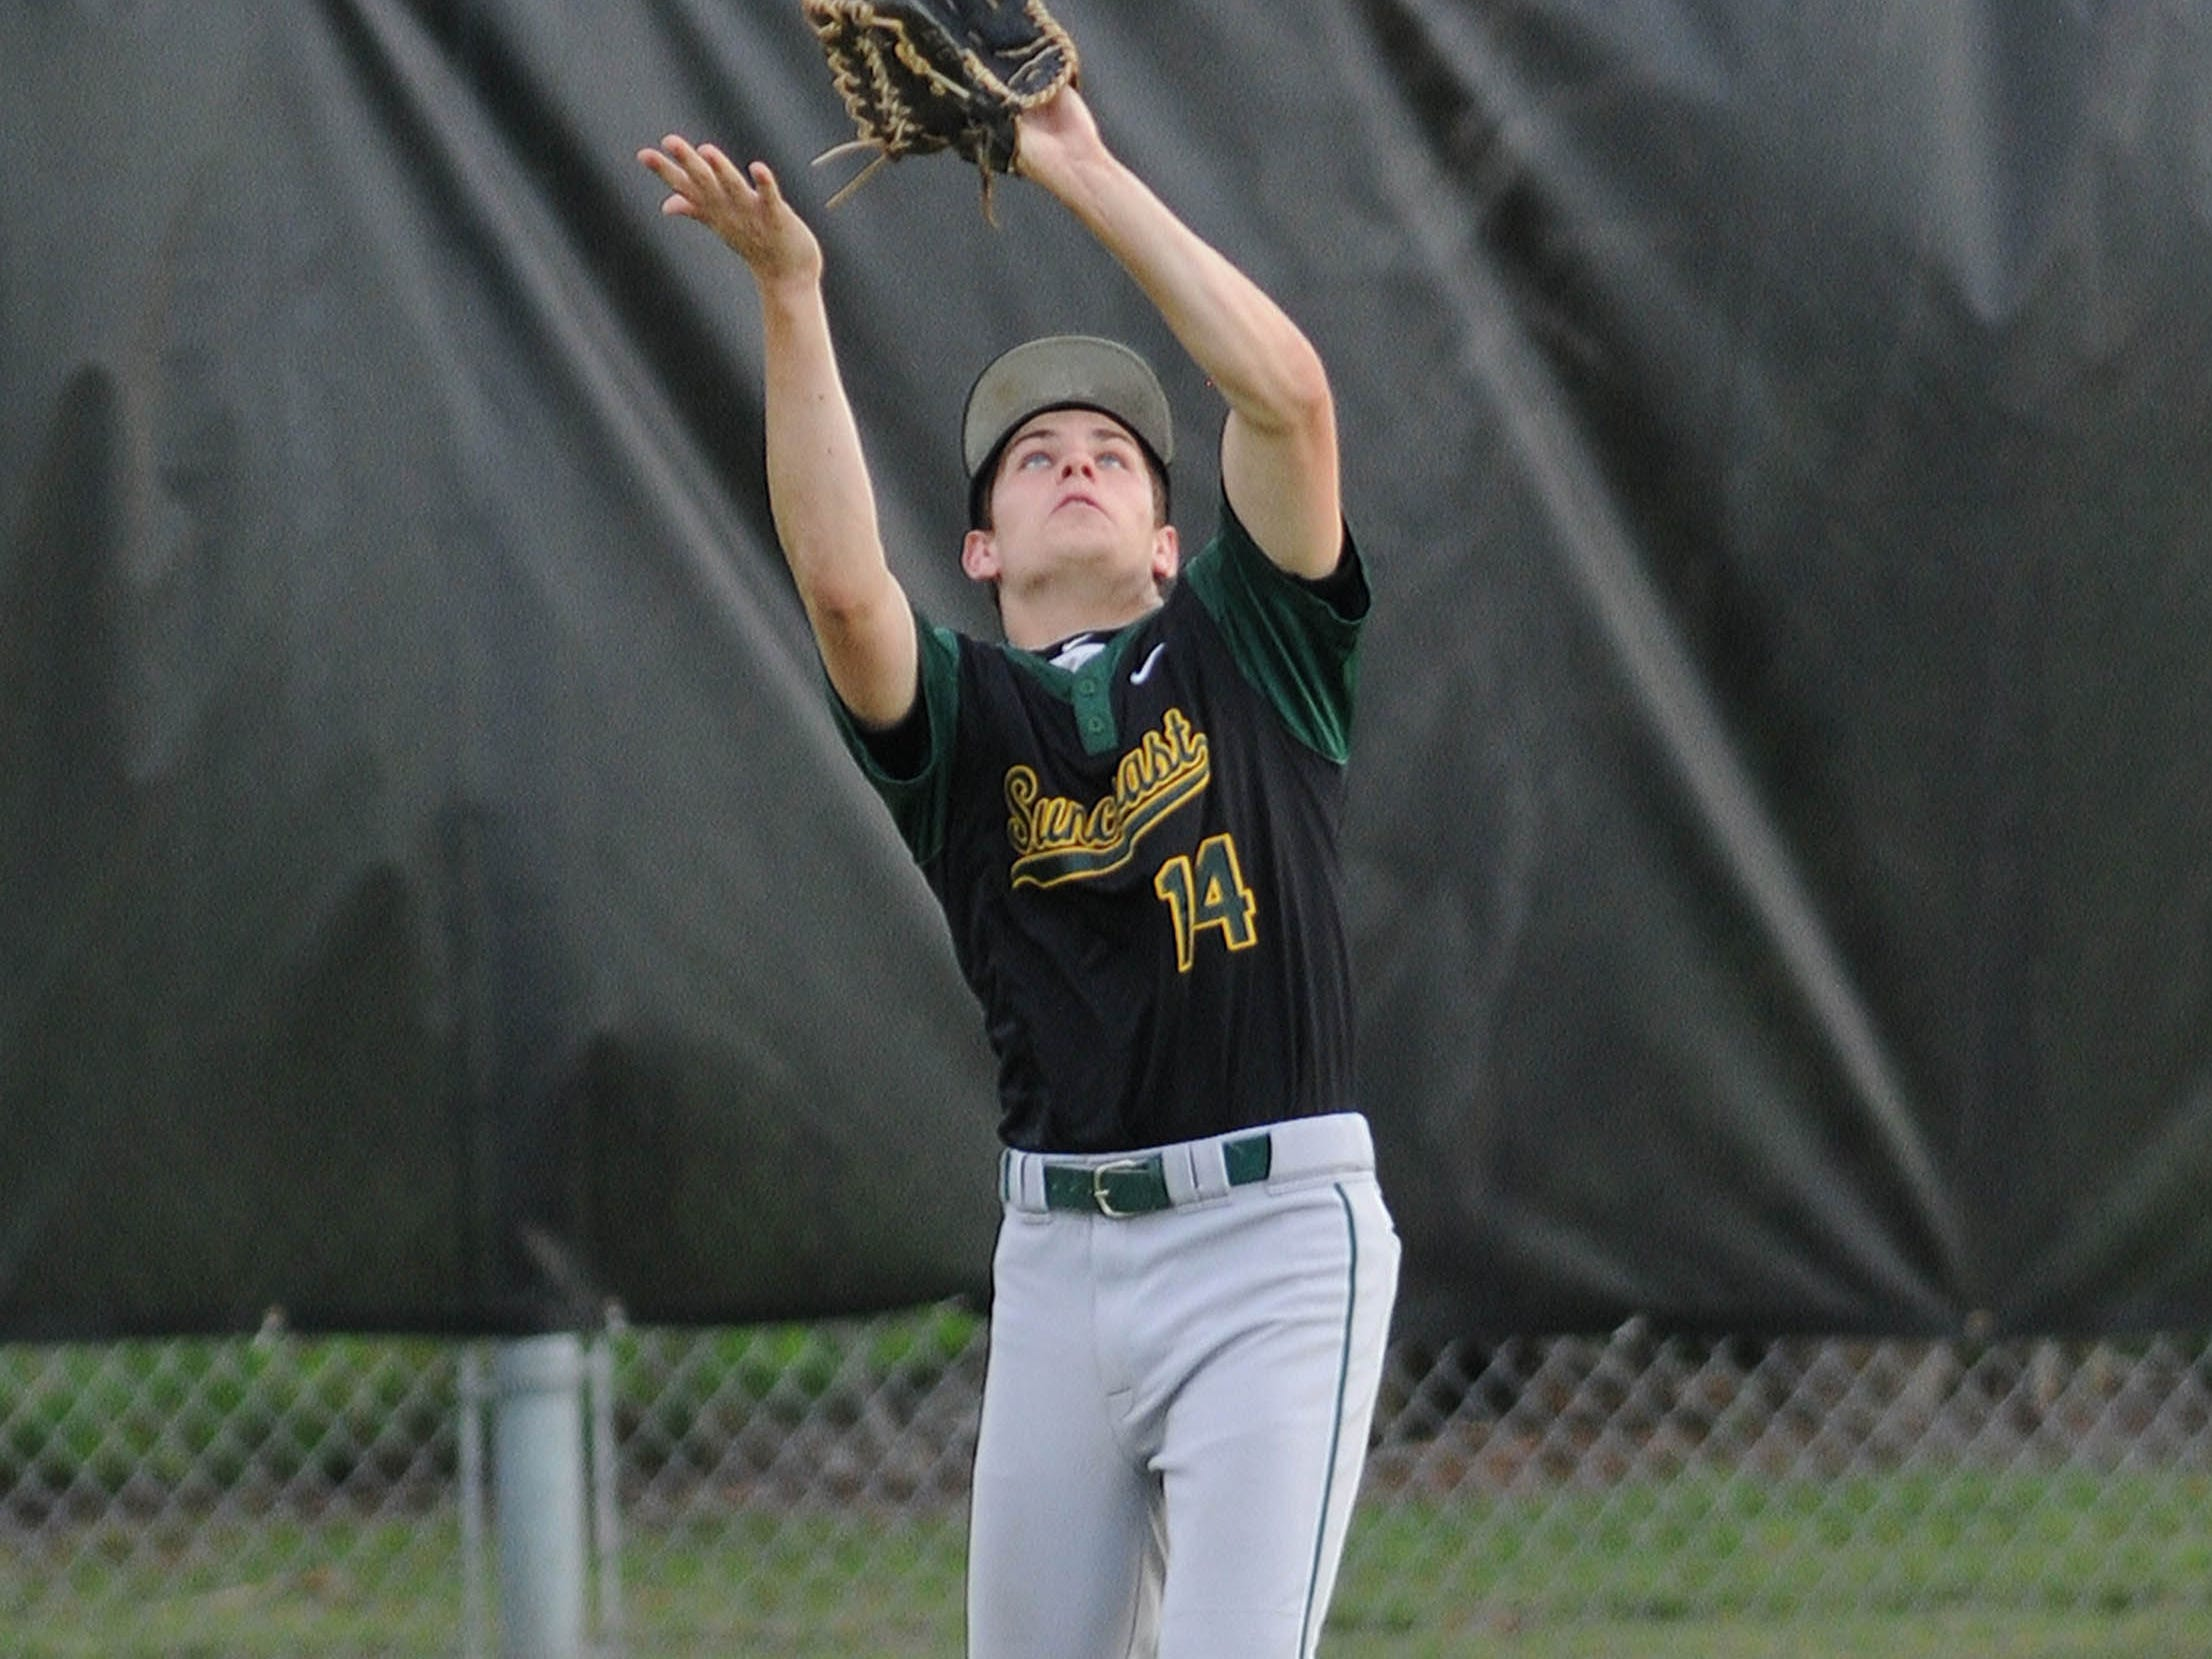 Liam Lyona of Suncoast makes a catch during Tuesday's game against Bayside at Palm Bay High school.